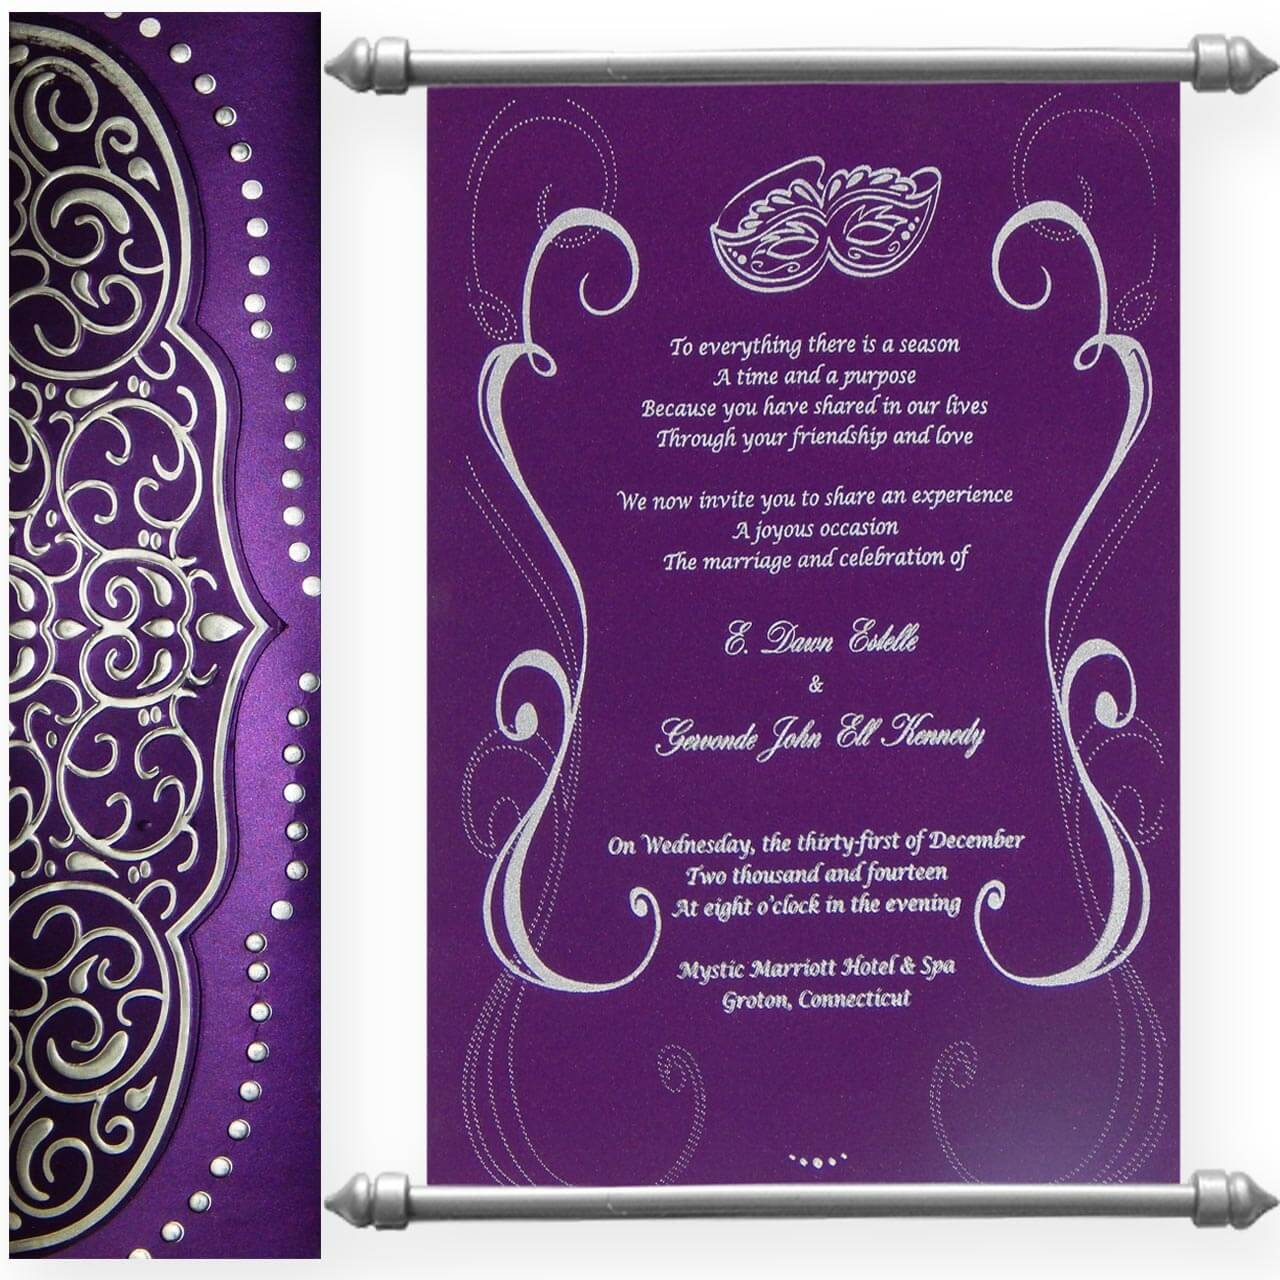 SCROLL WEDDING CARDS T1-518 Full View